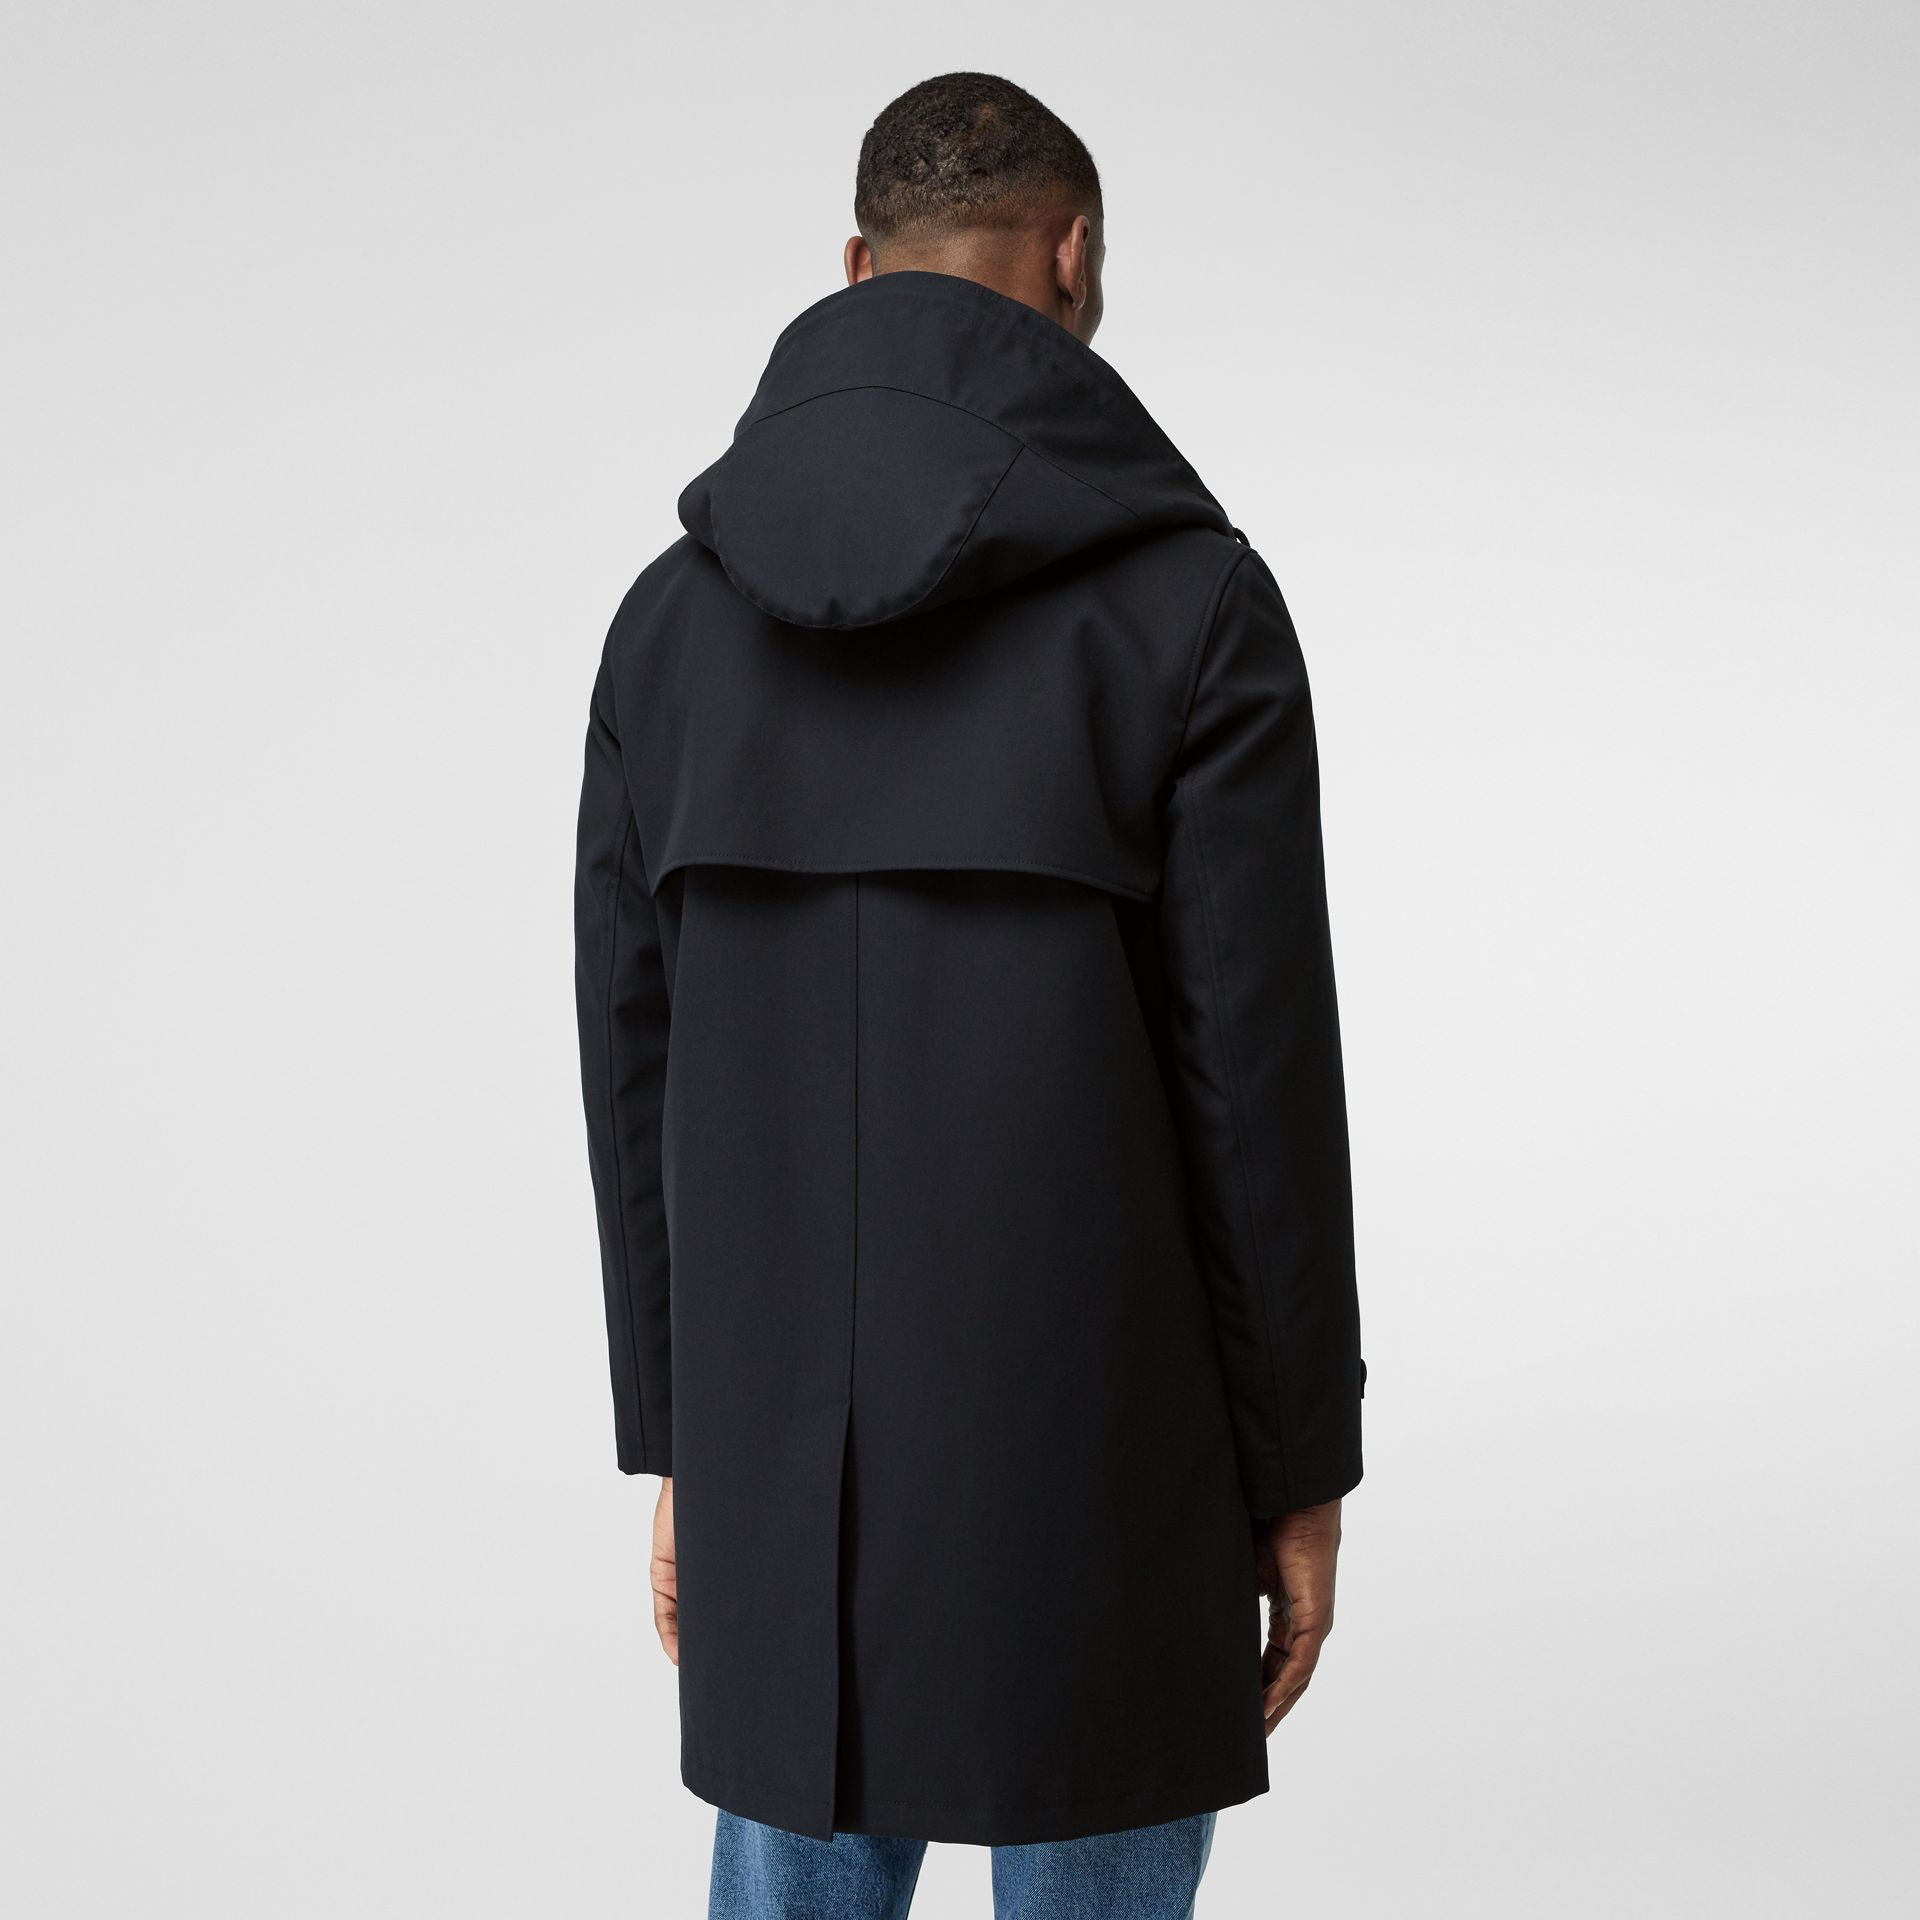 Cotton Gabardine Coat with Detachable Warmer in Midnight - Men | Burberry Australia - gallery image 2